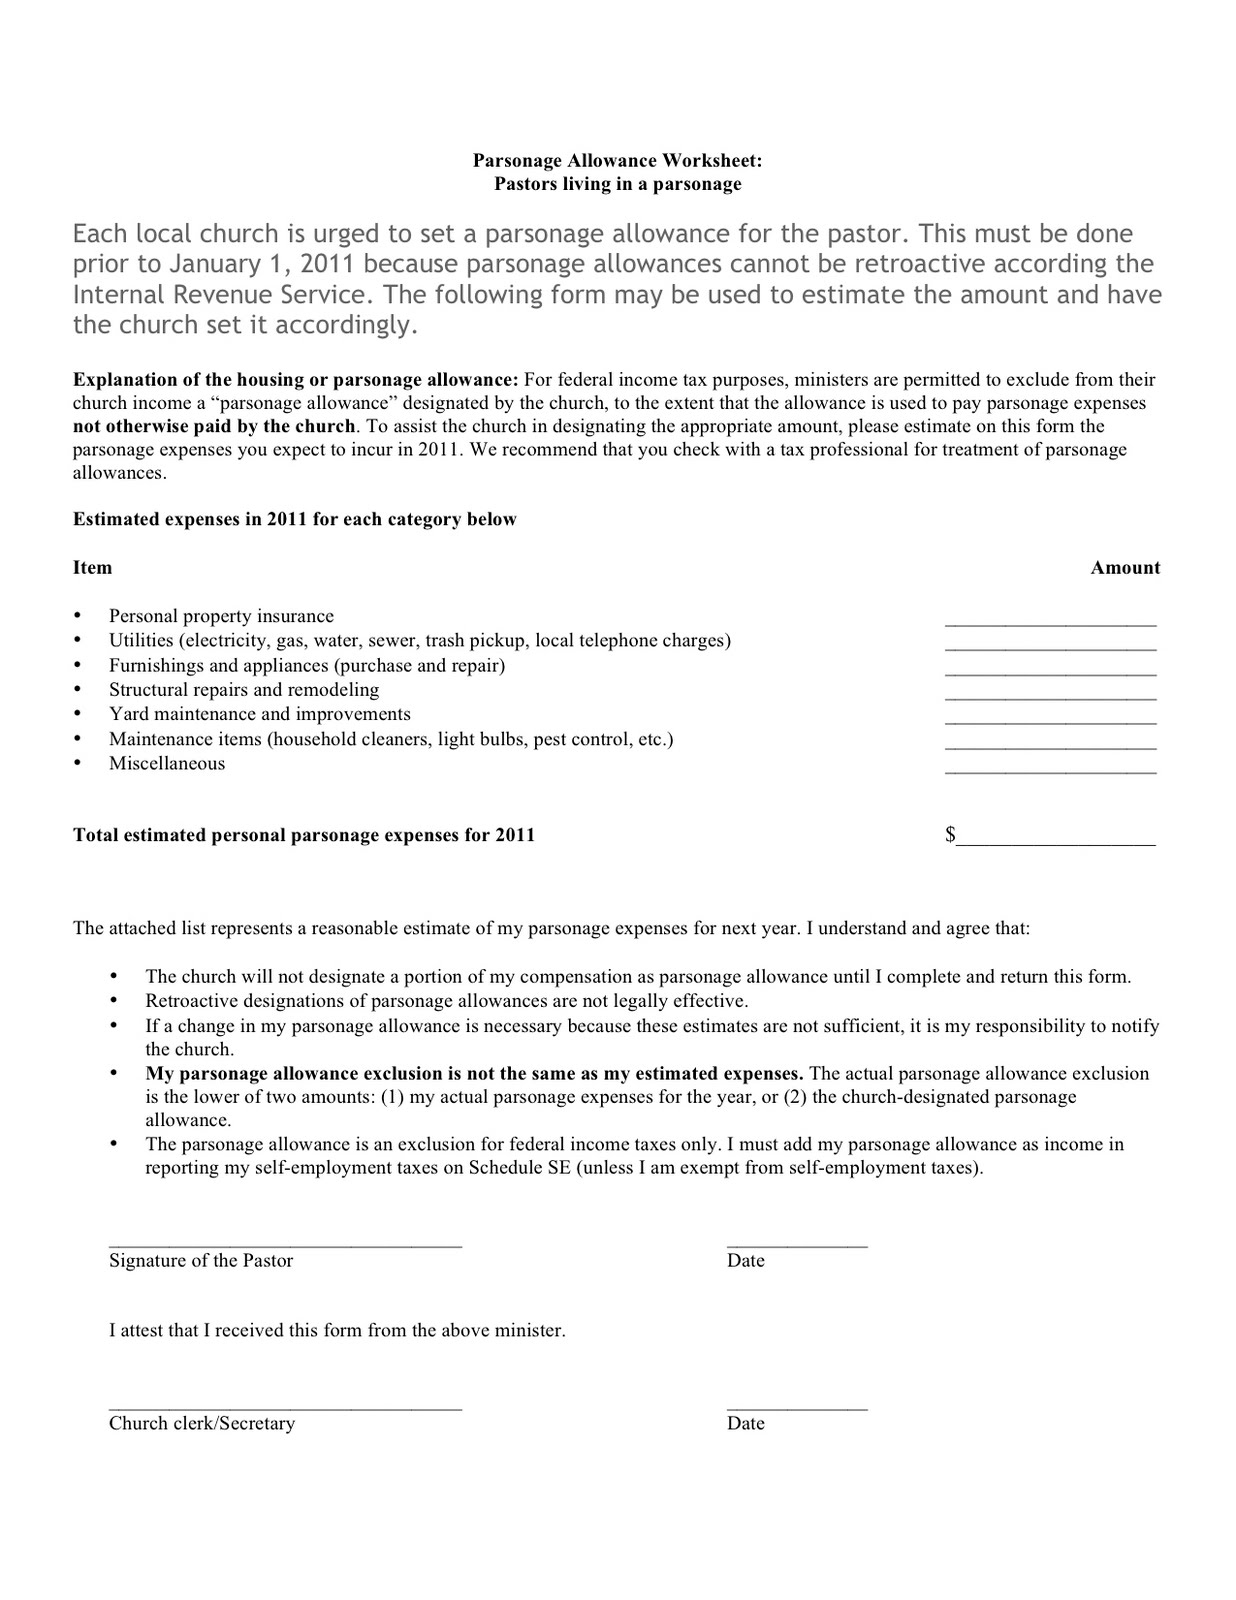 Worksheet Irs Personal Allowance Worksheet Grass Fedjp